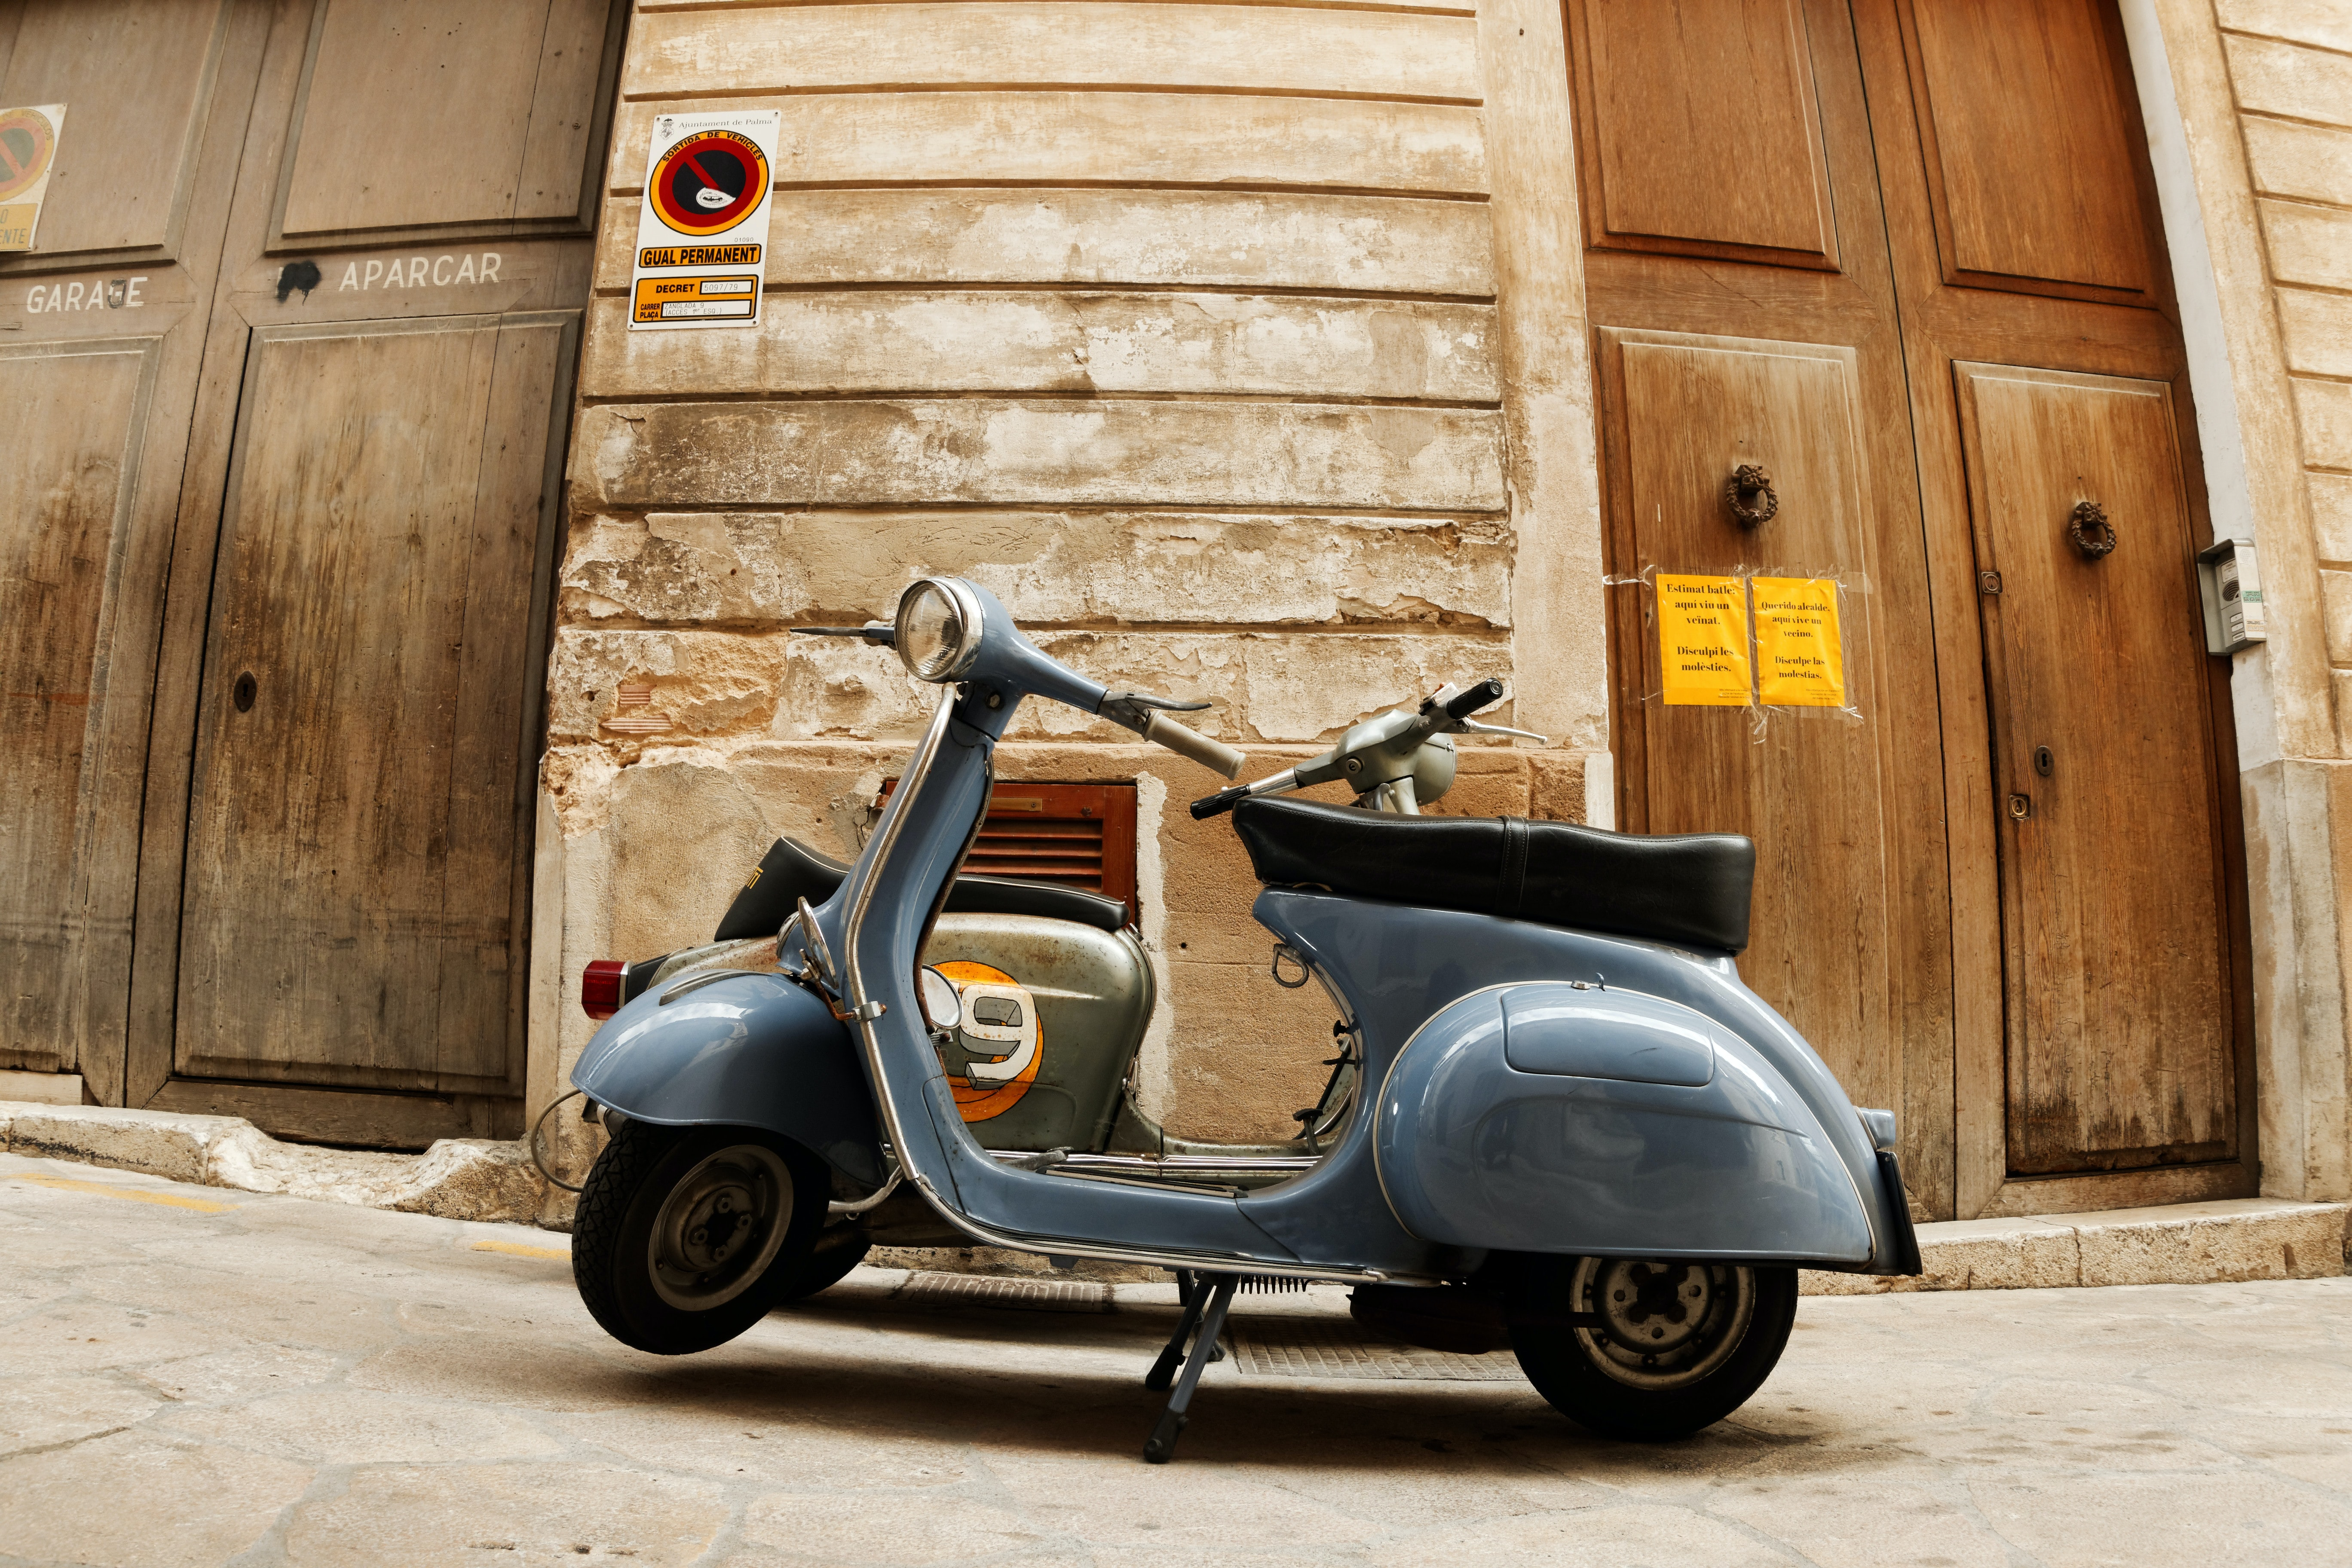 landscape photograph of classic gray motor scooter